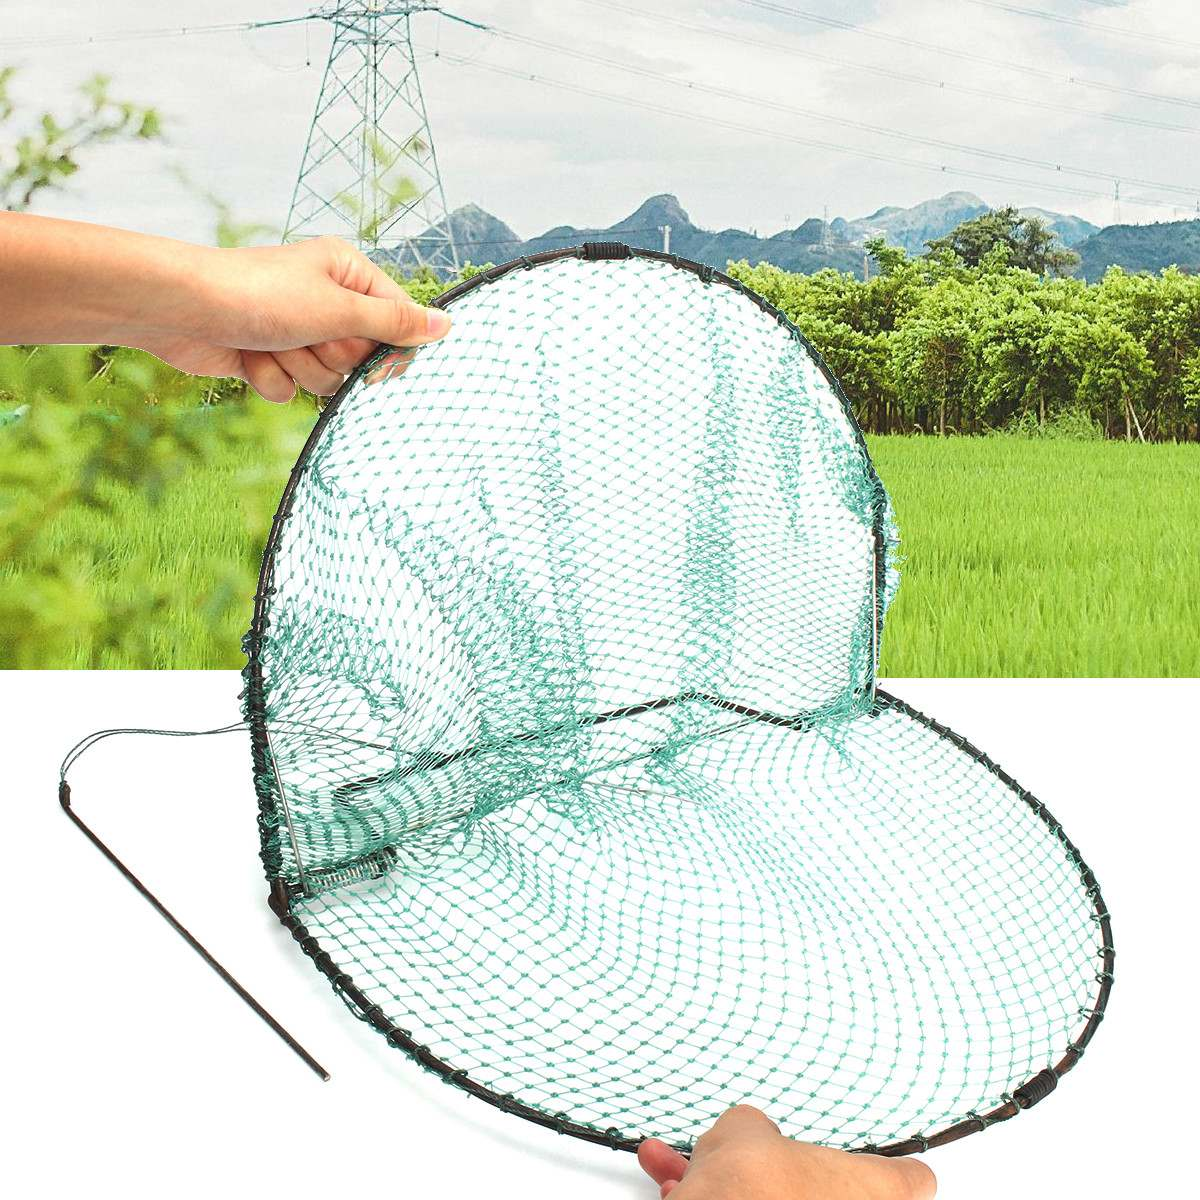 49X30cm New Bird Net Effective Humane Live Trap Hunting Sensitive Quail Humane Trapping Hunting Garden Supplies Pest Control